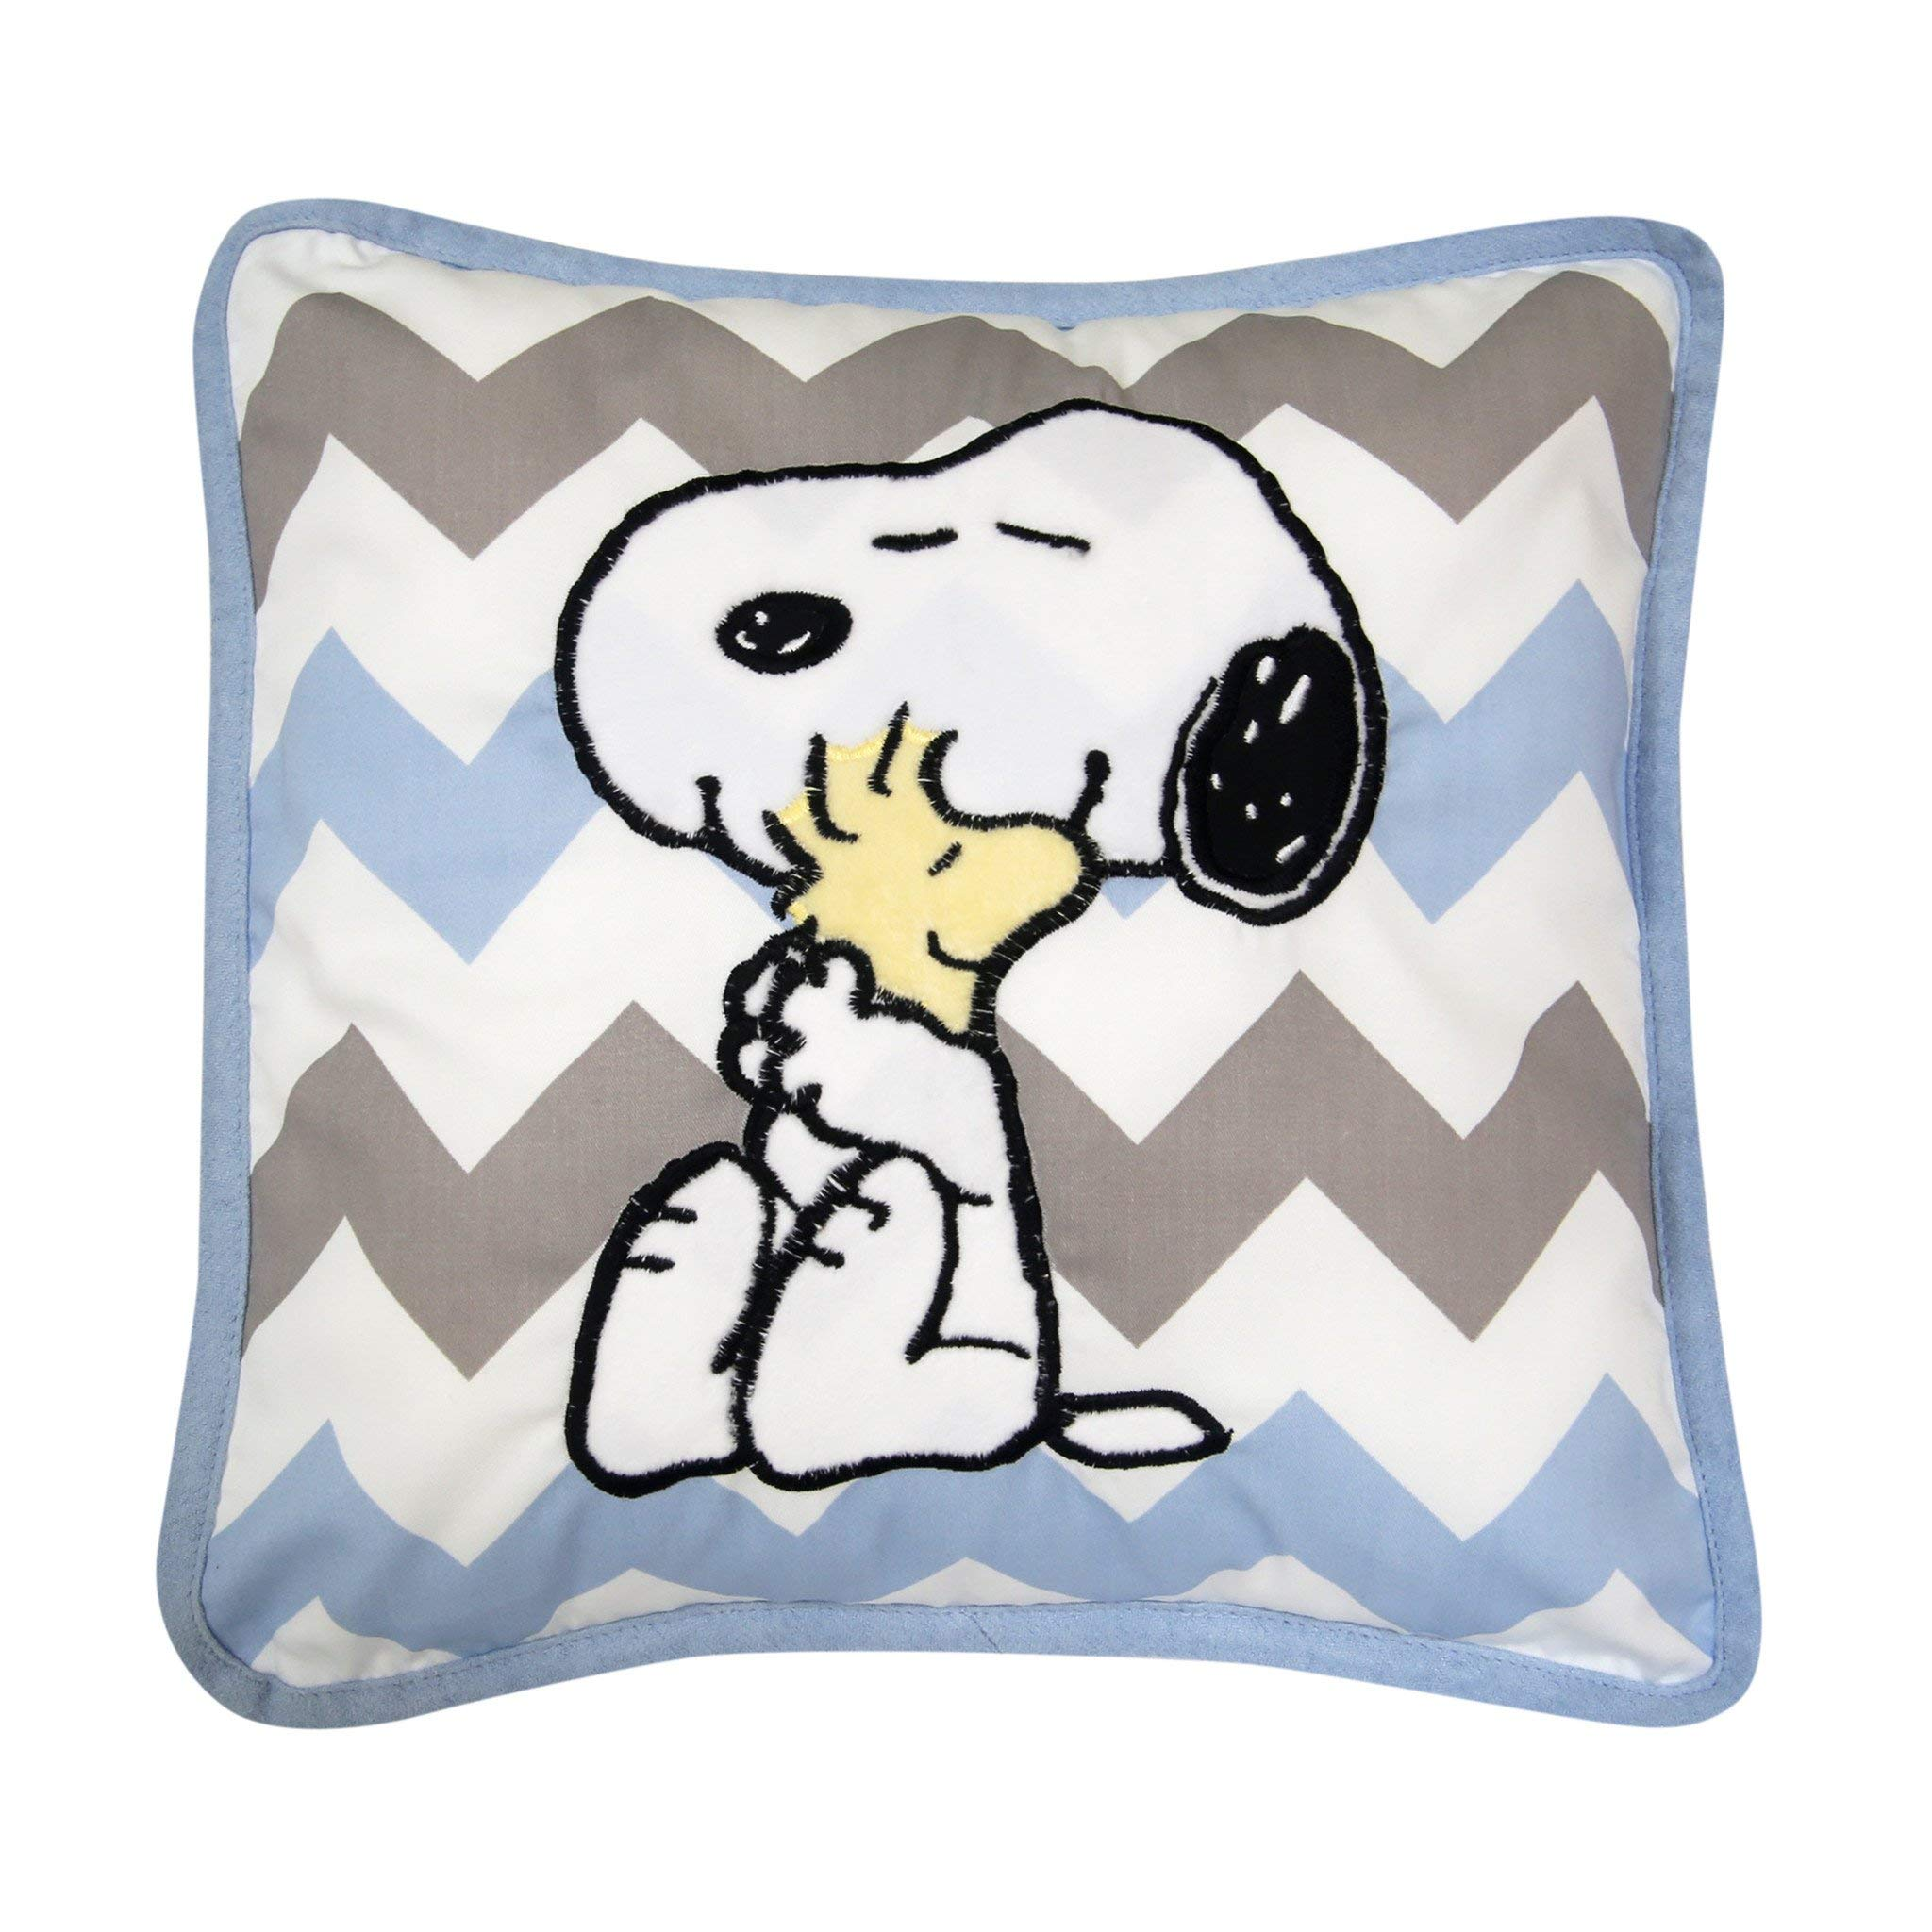 Lambs & Ivy Peanuts My Little Snoopy Decorative Pillow, Blue by Lambs & Ivy